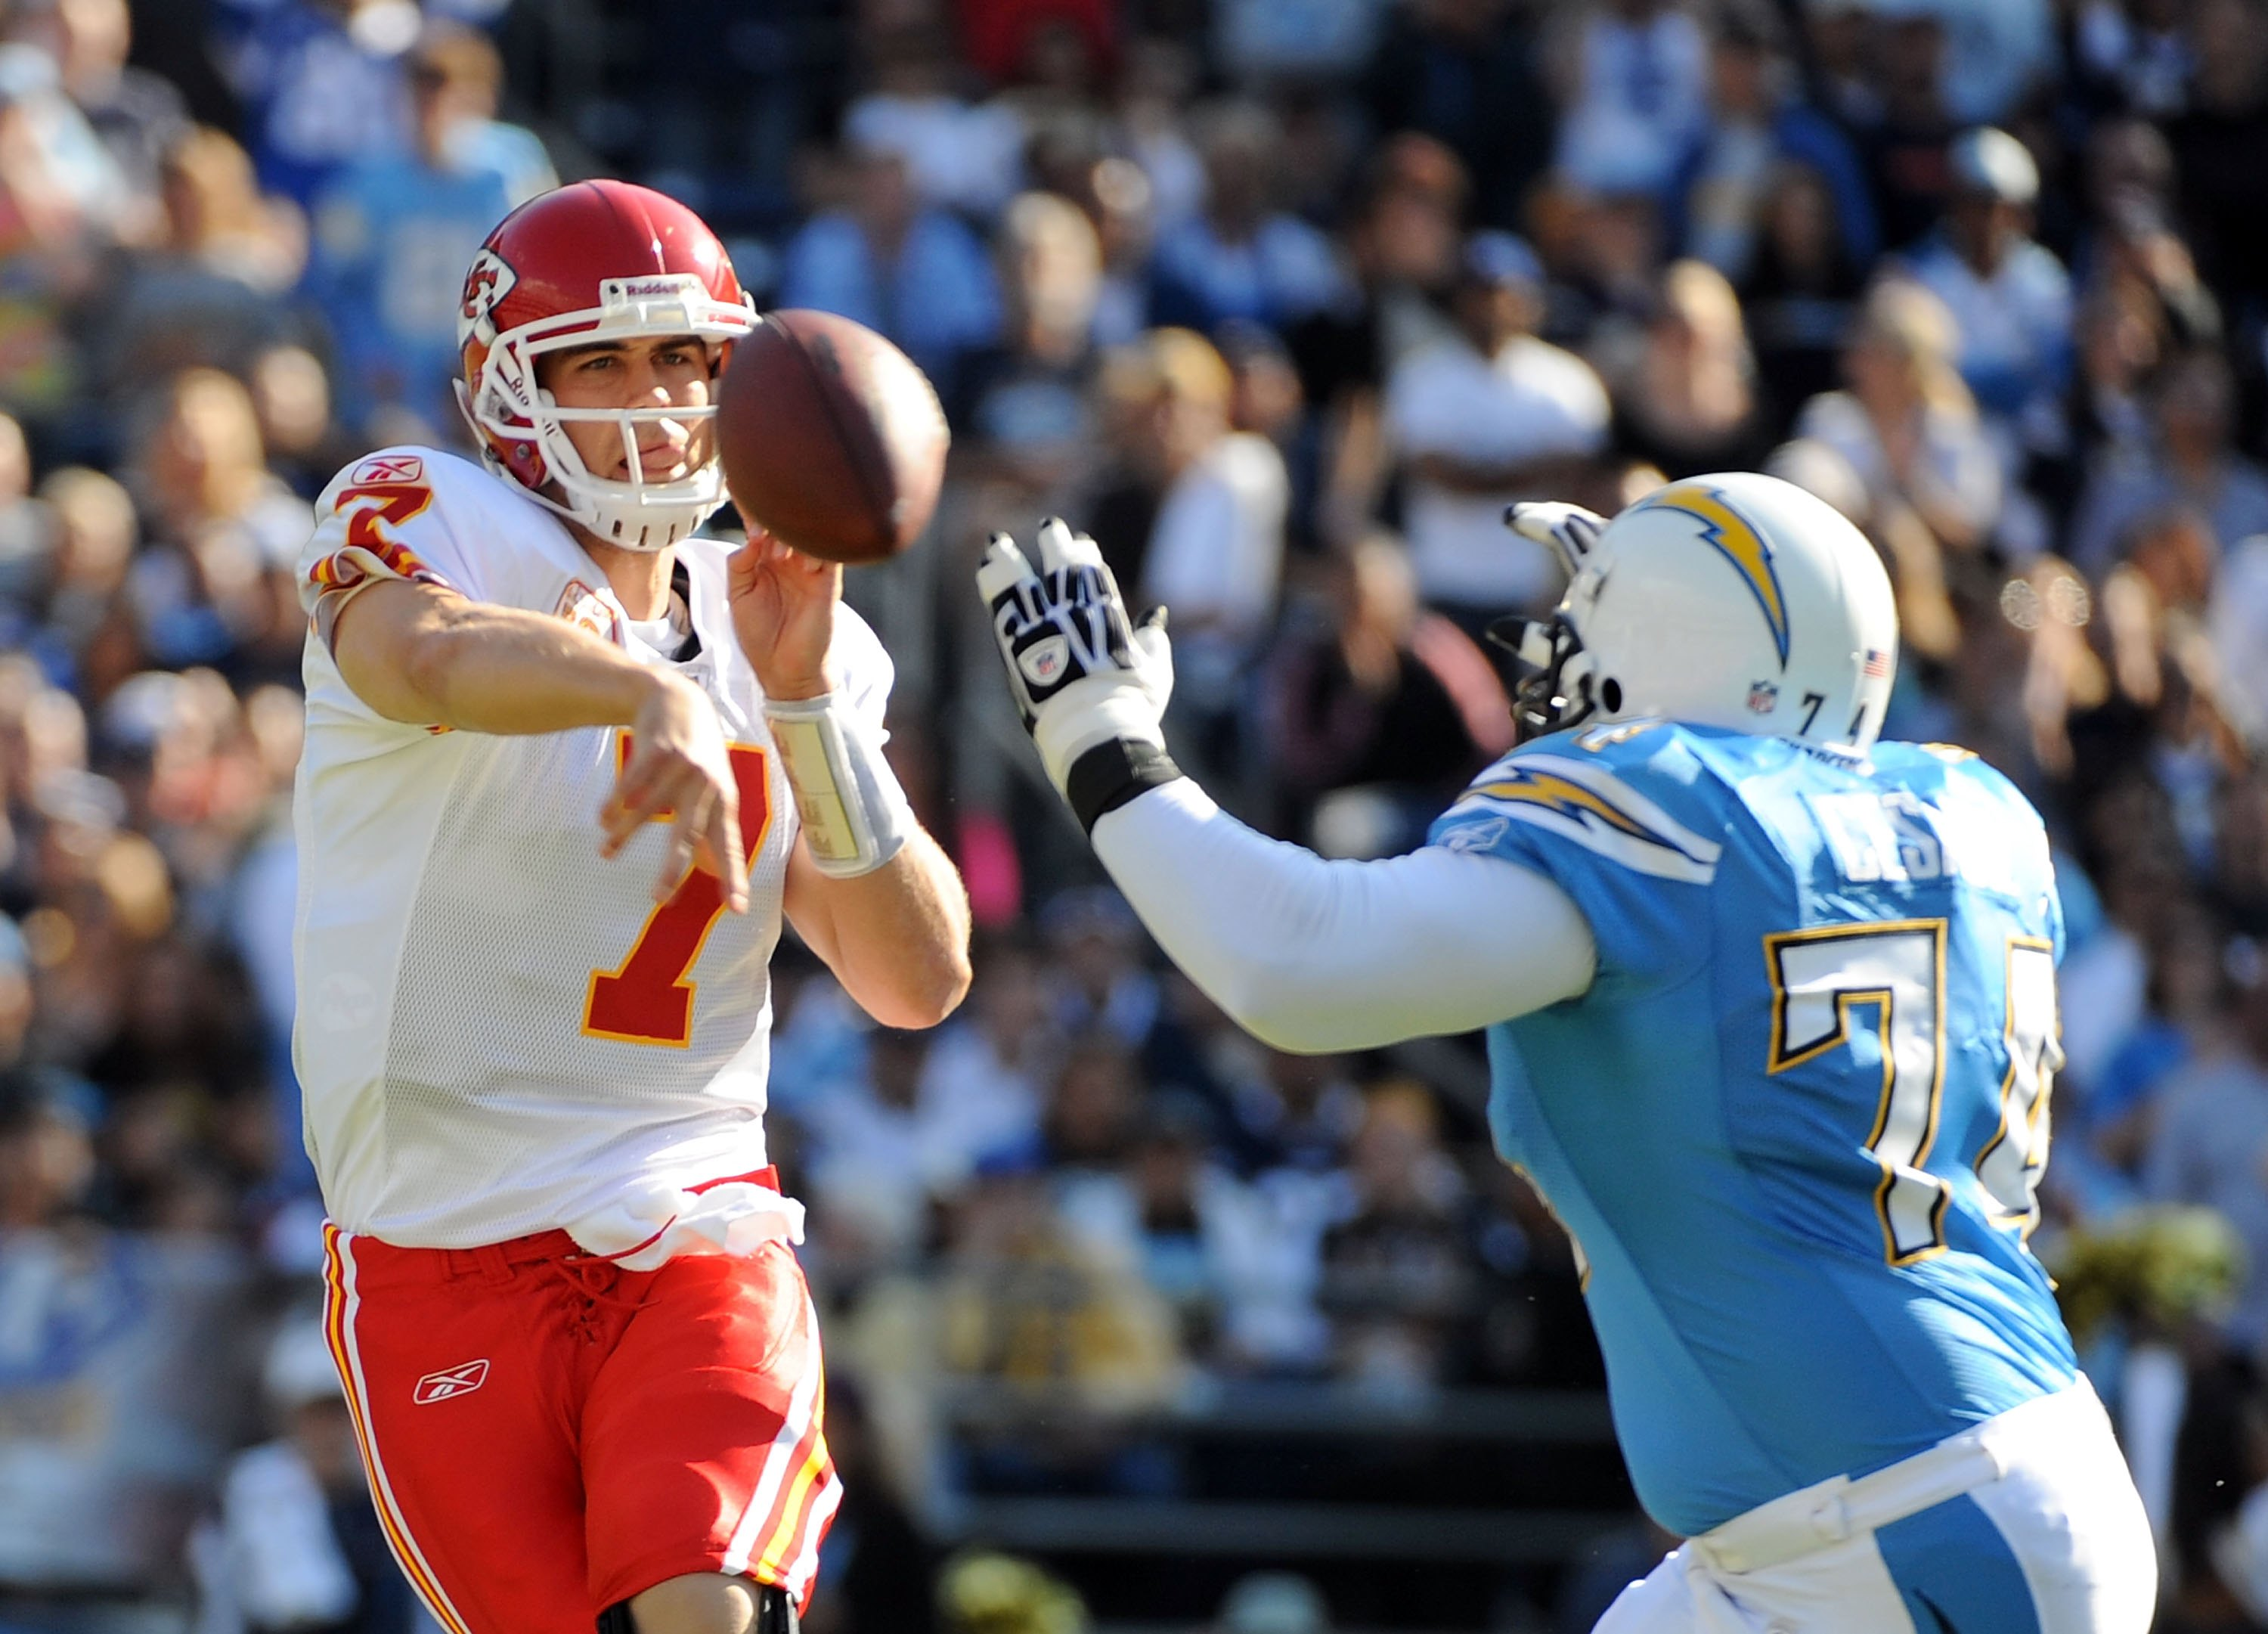 SAN DIEGO - NOVEMBER 29:  Matt Cassel #7 of the Kansas City Chiefs throws as he is rushed by Jacques Cesaire #74 of the San Diego Chargers at Qualcomm Stadium on November 29, 2009 in San Diego, California.  (Photo by Harry How/Getty Images)